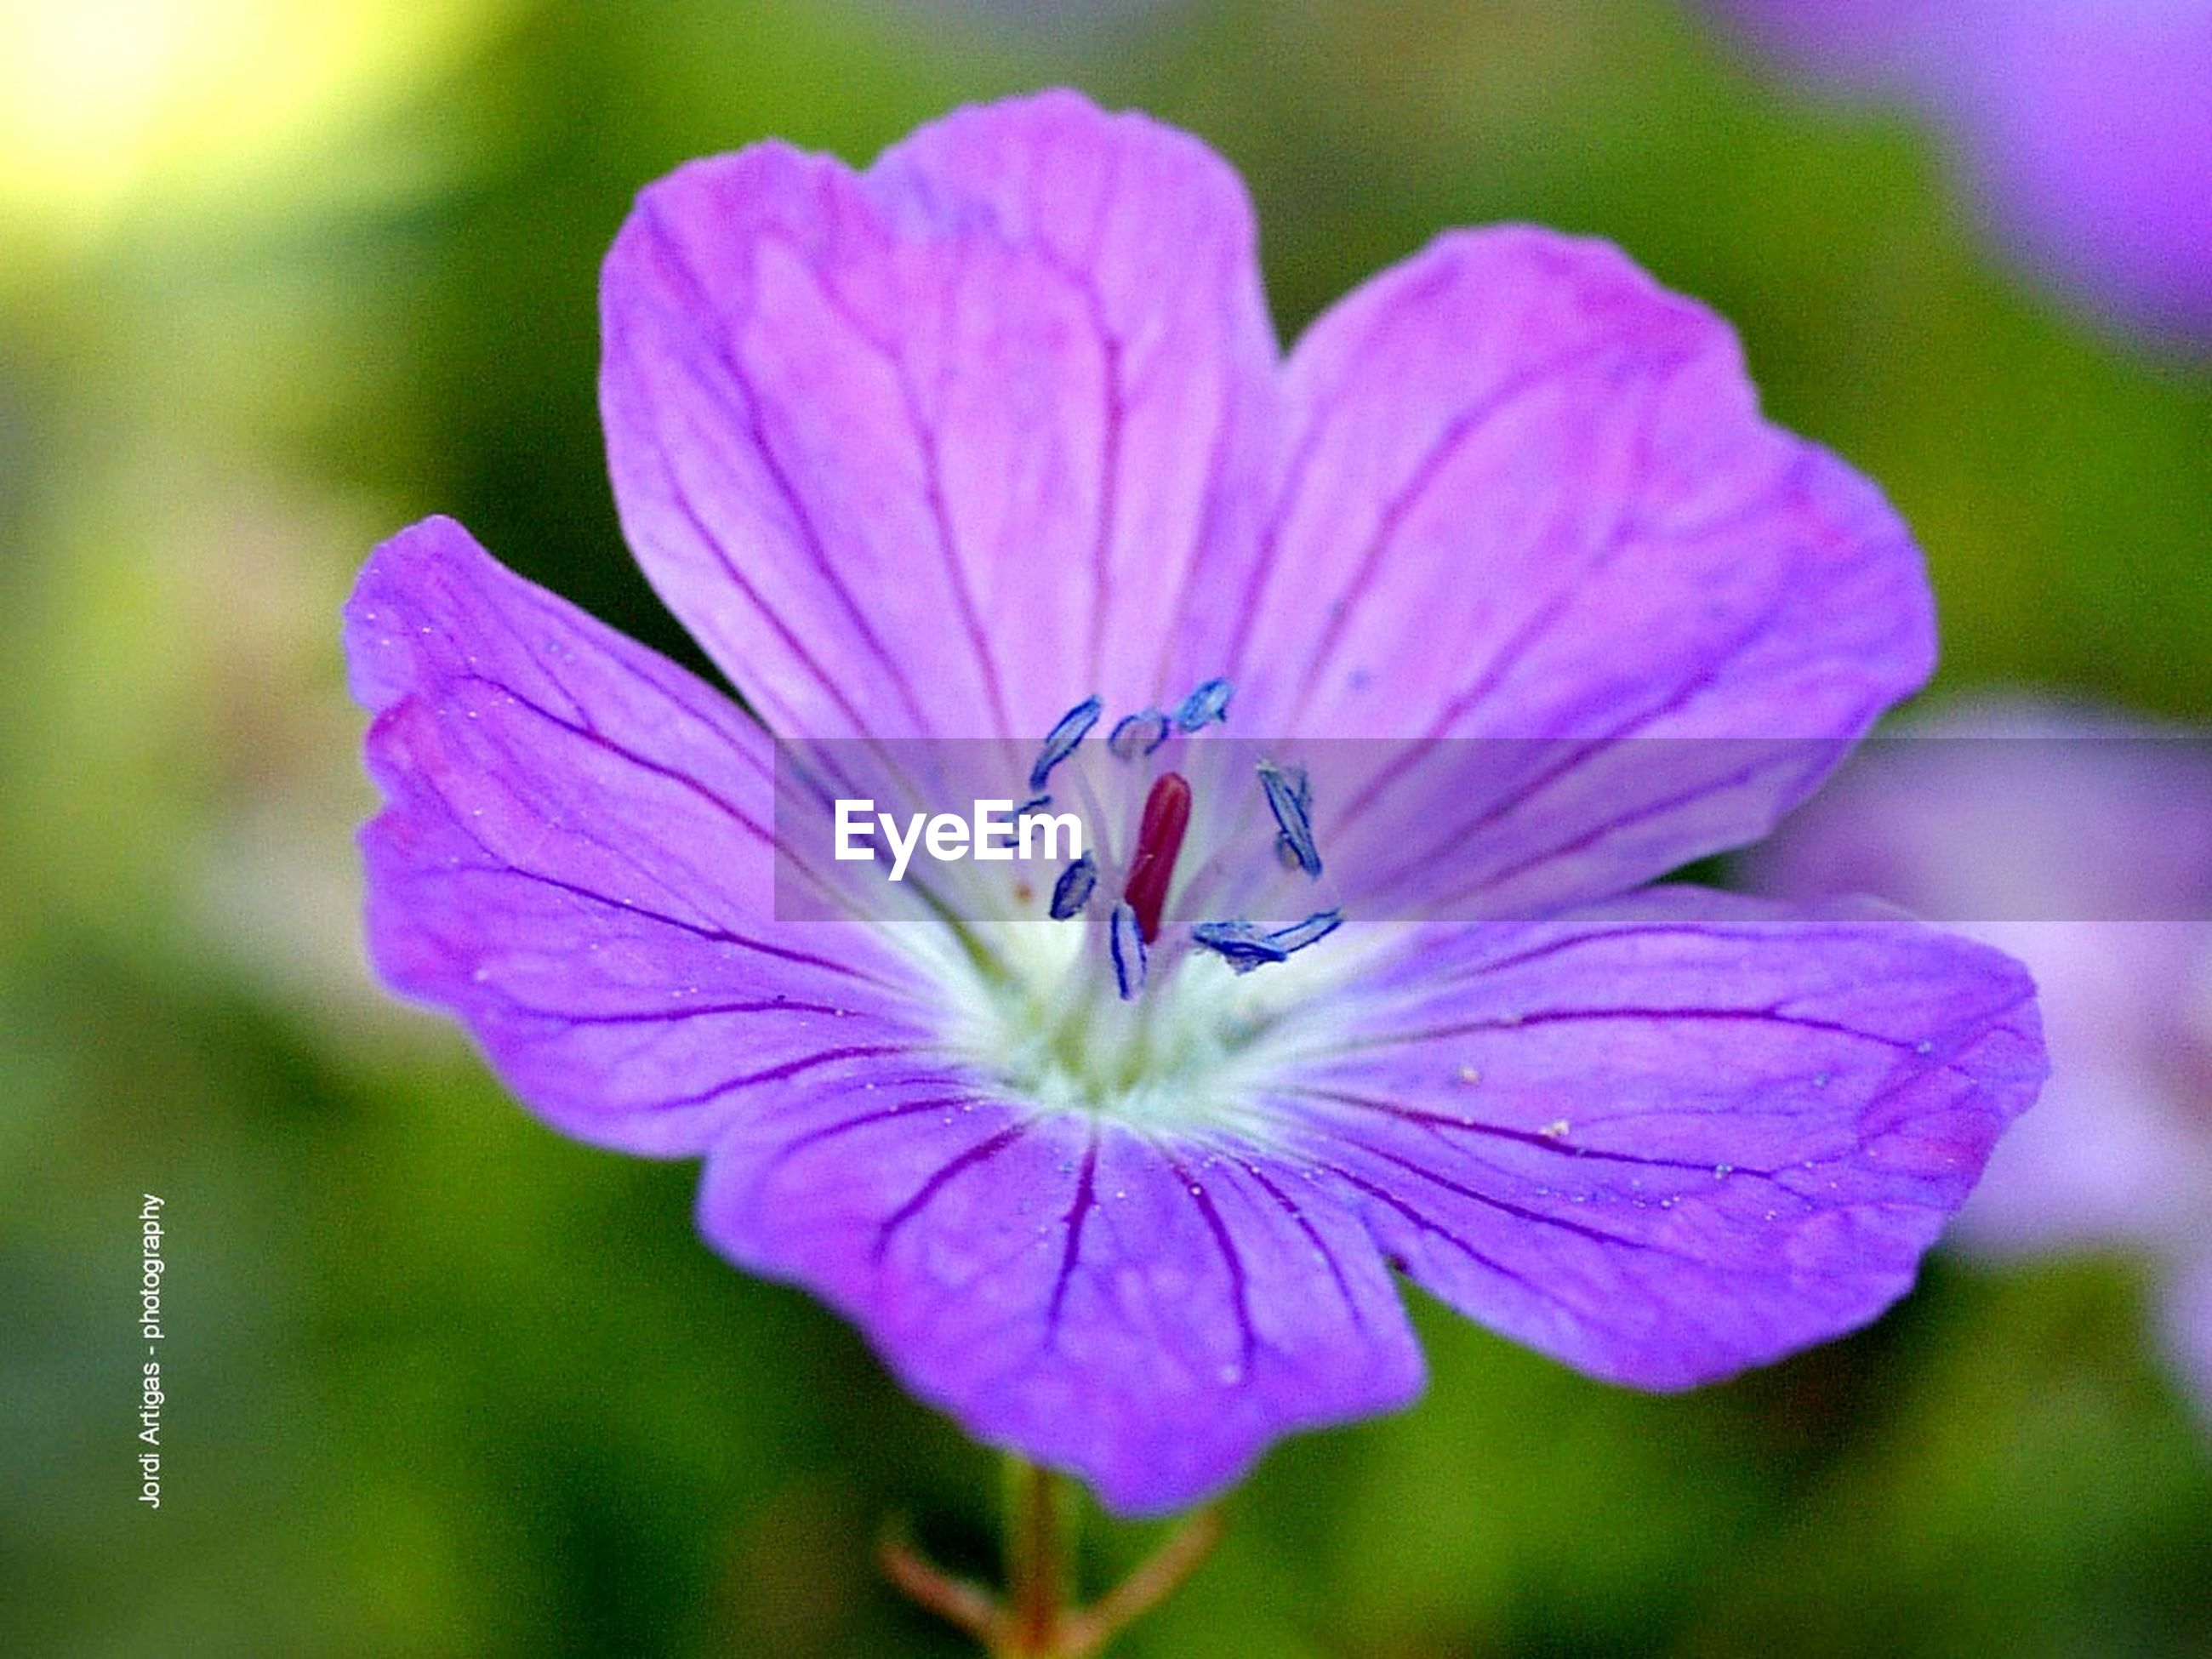 flower, petal, freshness, flower head, fragility, close-up, growth, beauty in nature, single flower, focus on foreground, nature, blooming, purple, pollen, pink color, stamen, plant, selective focus, in bloom, blossom